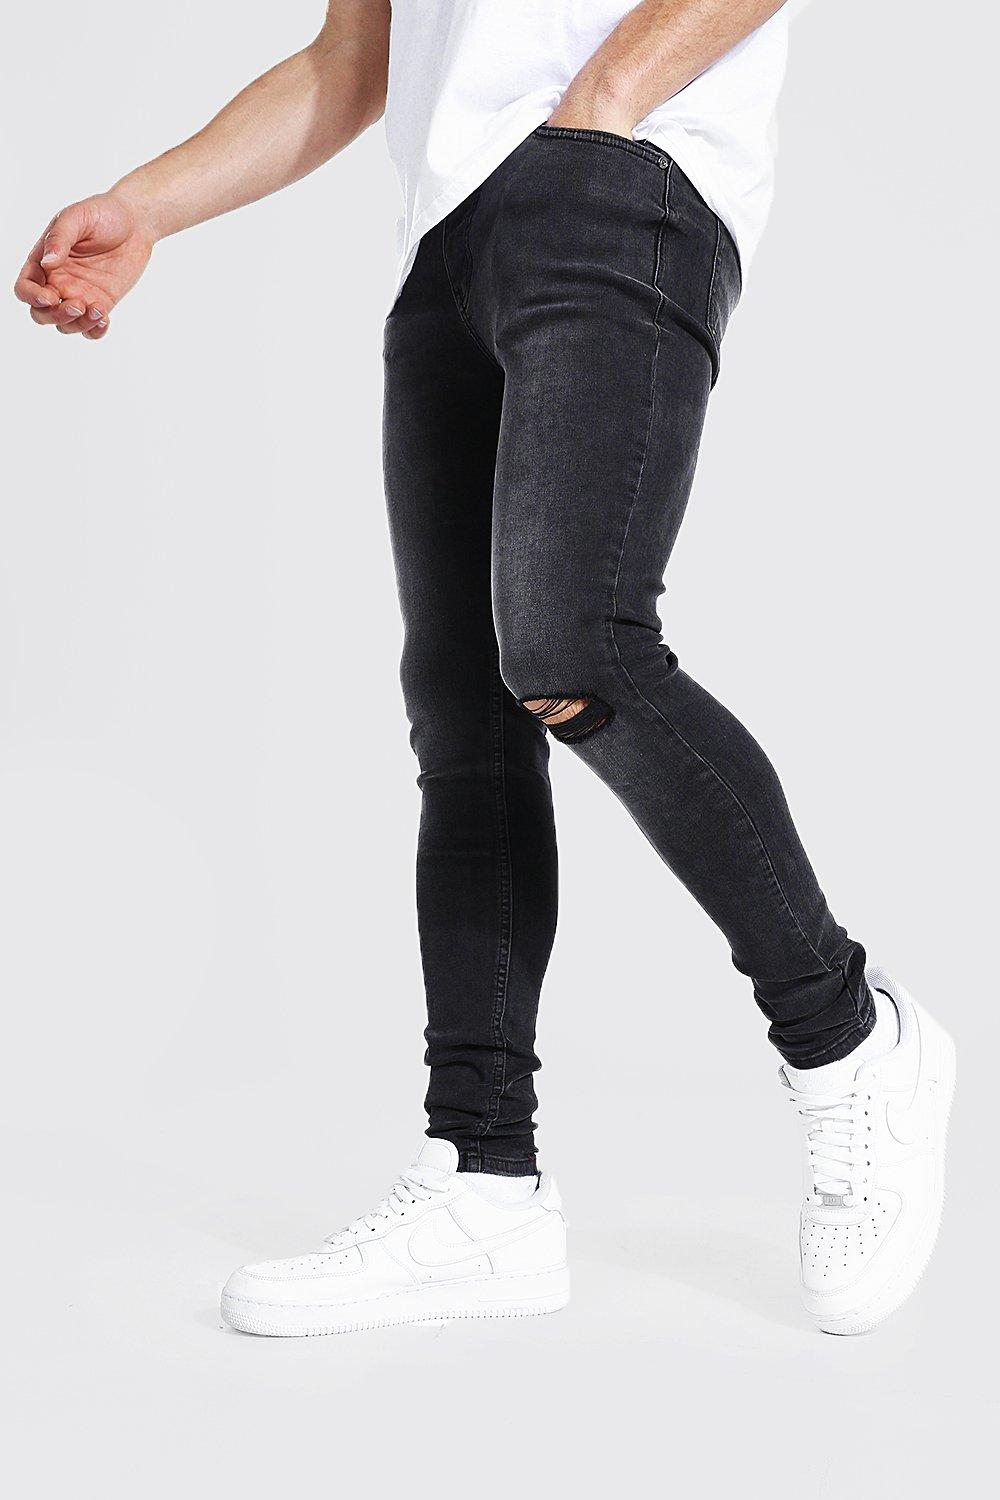 """BOOHOO MAN SLIM FIT JEANS WITH BUSTED KNEES WAIST 32/"""" REGULAR ONLY £14.99"""